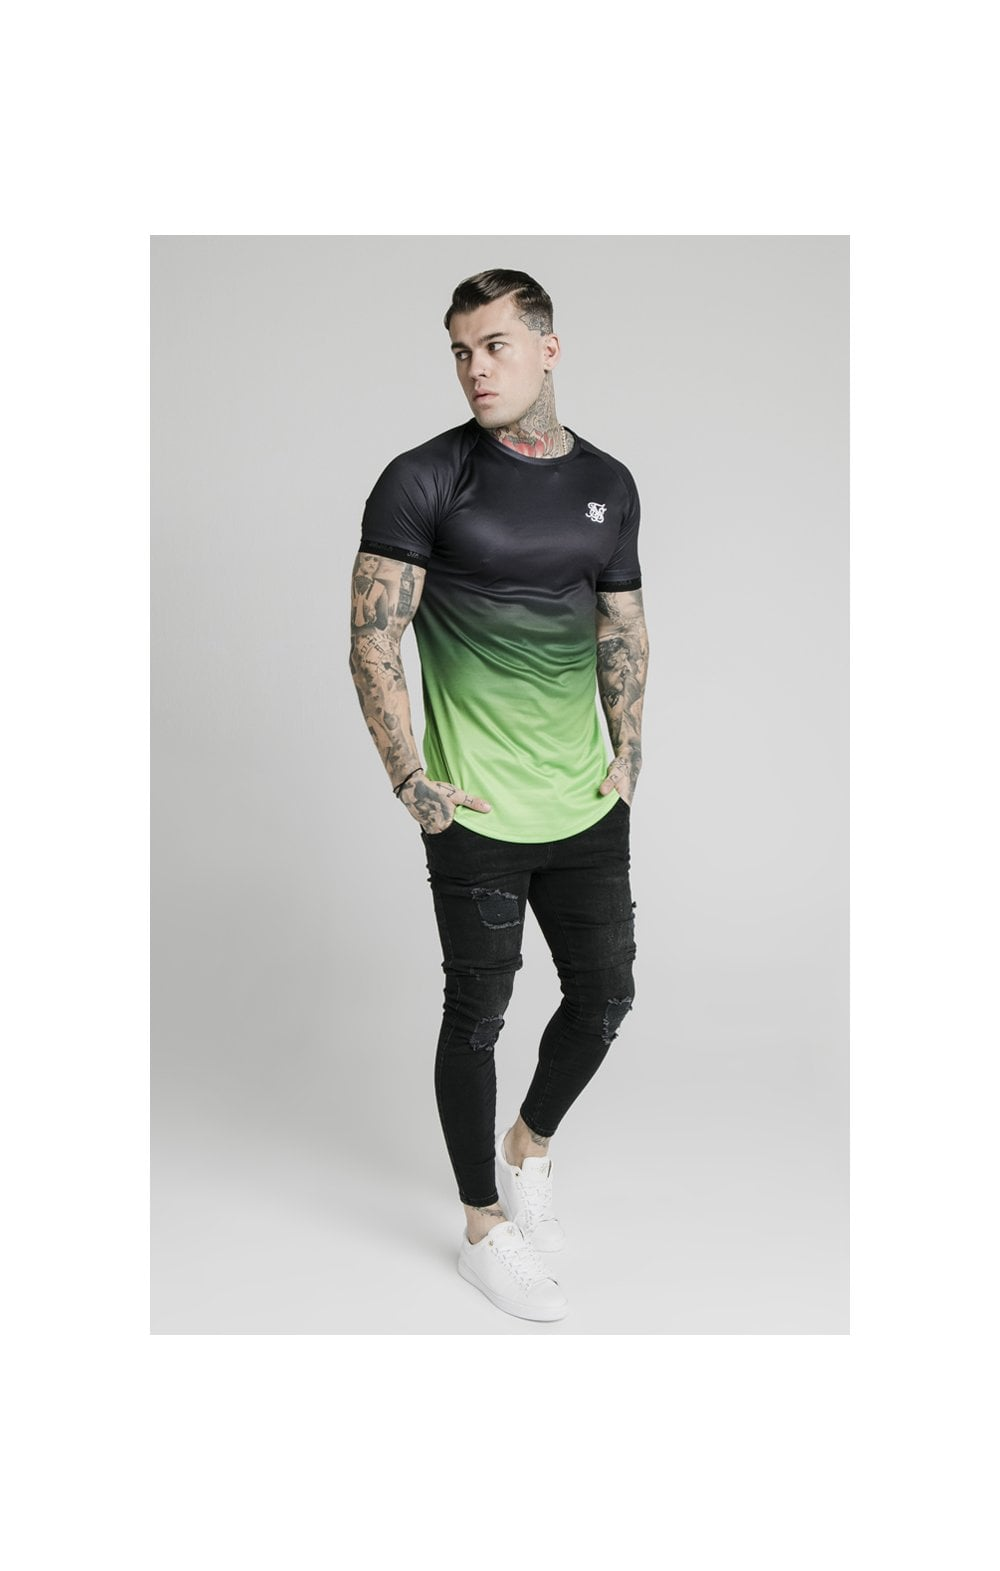 Load image into Gallery viewer, SikSilk S/S Fade Tech Tee - Black & Fluro (3)